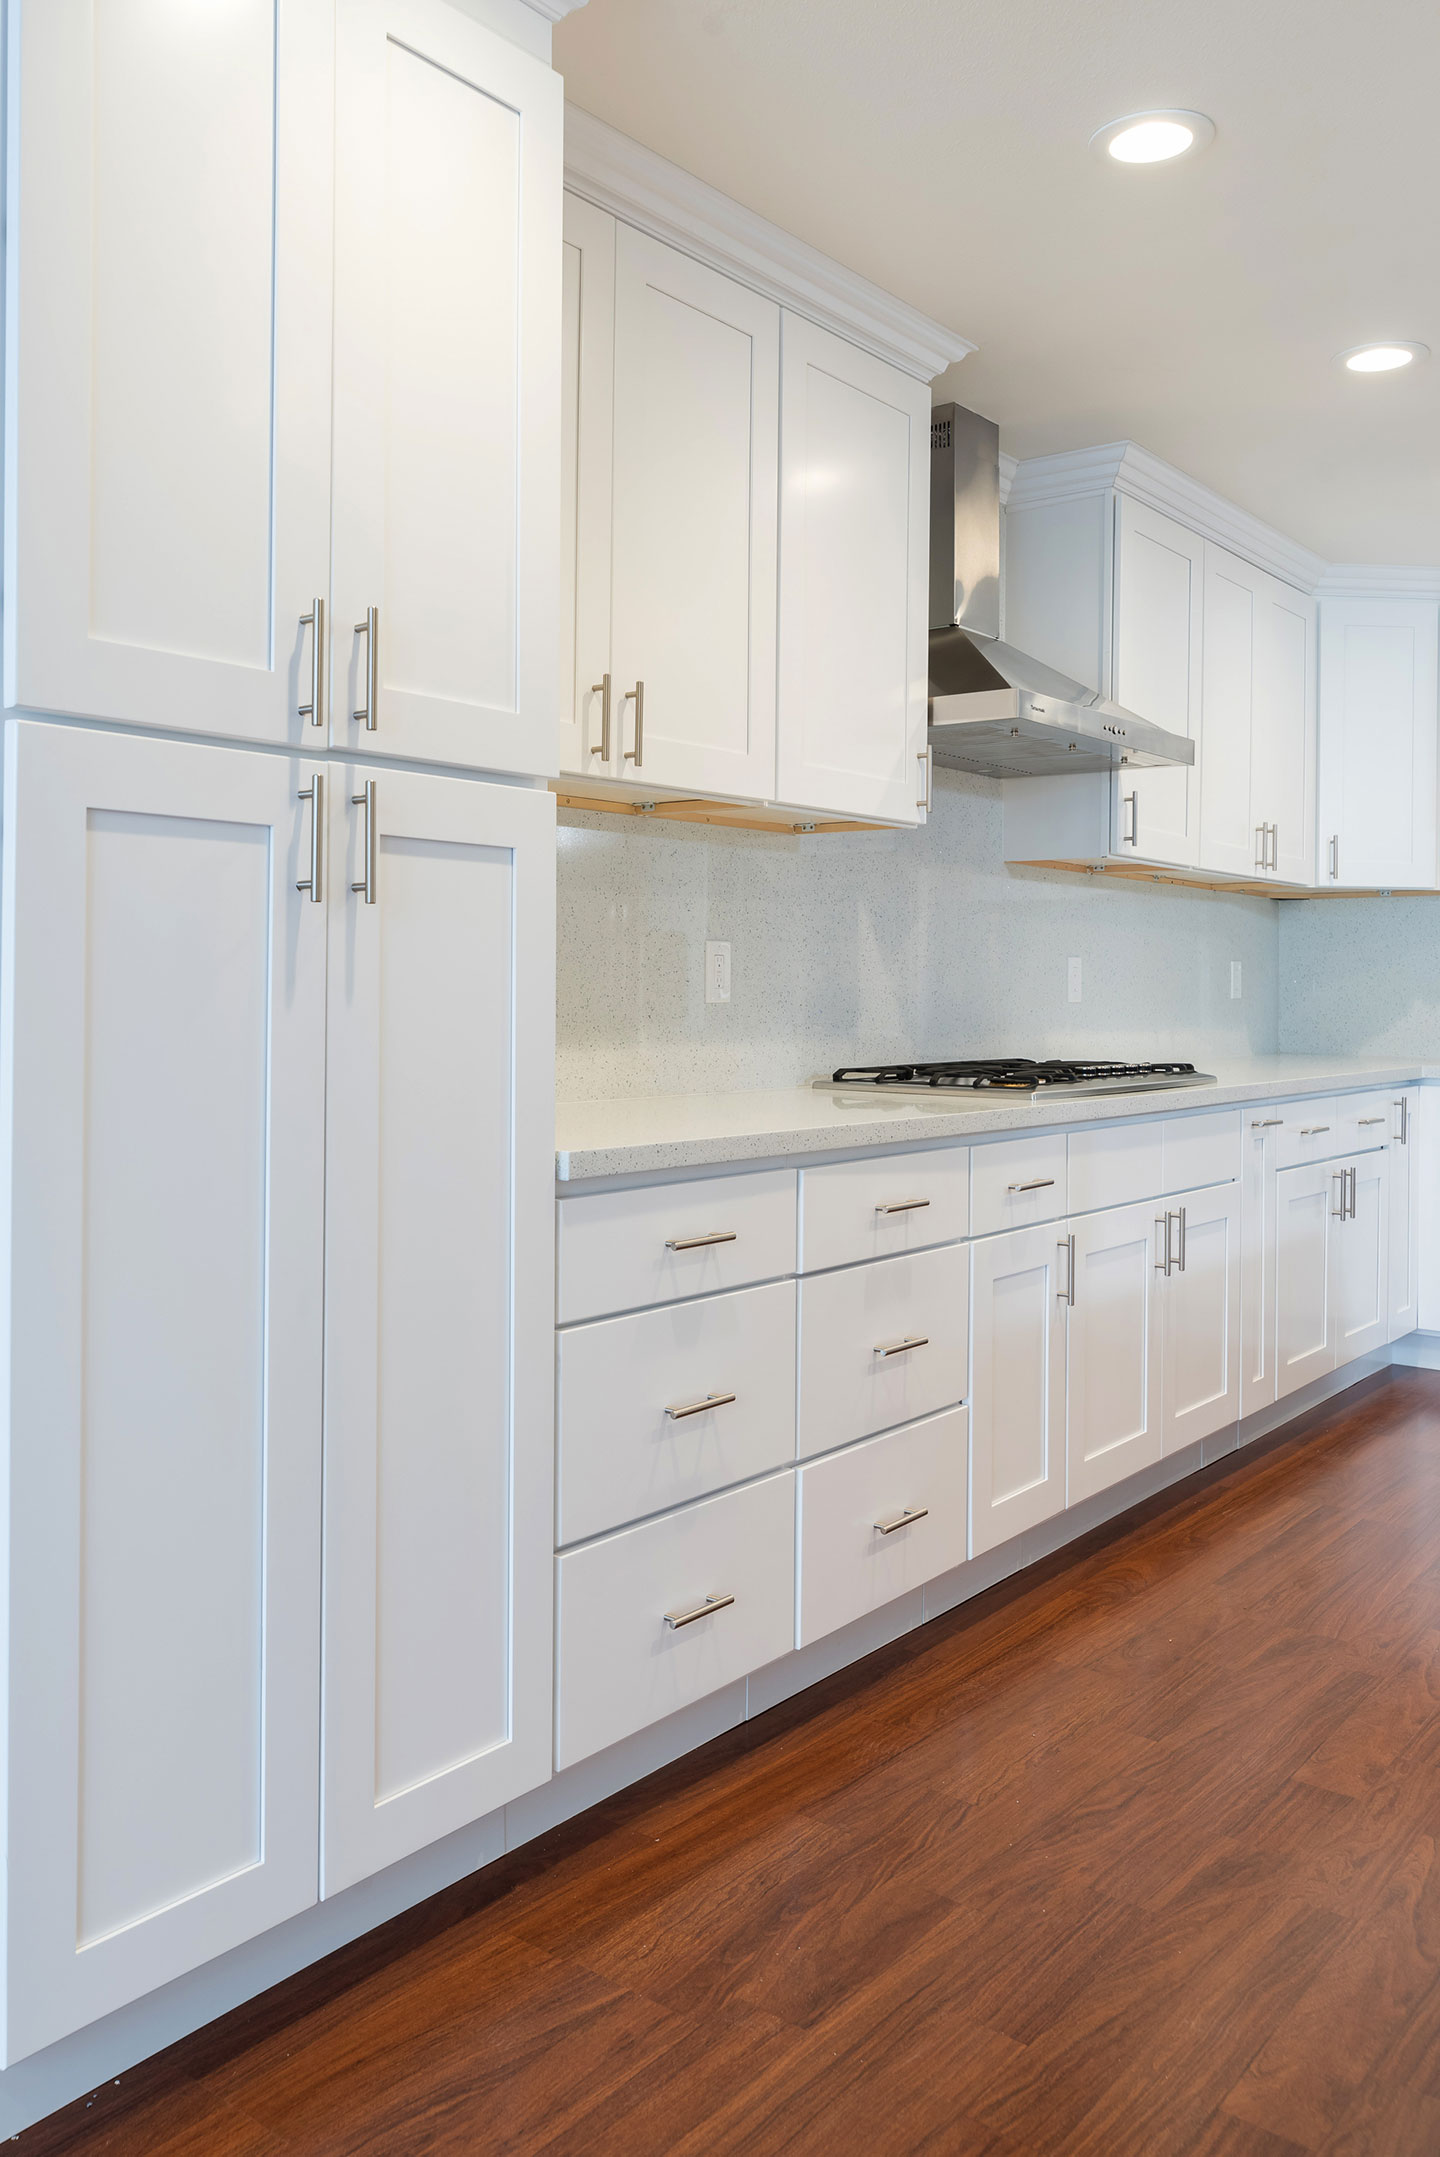 floor to ceiling cabinets with gold handles